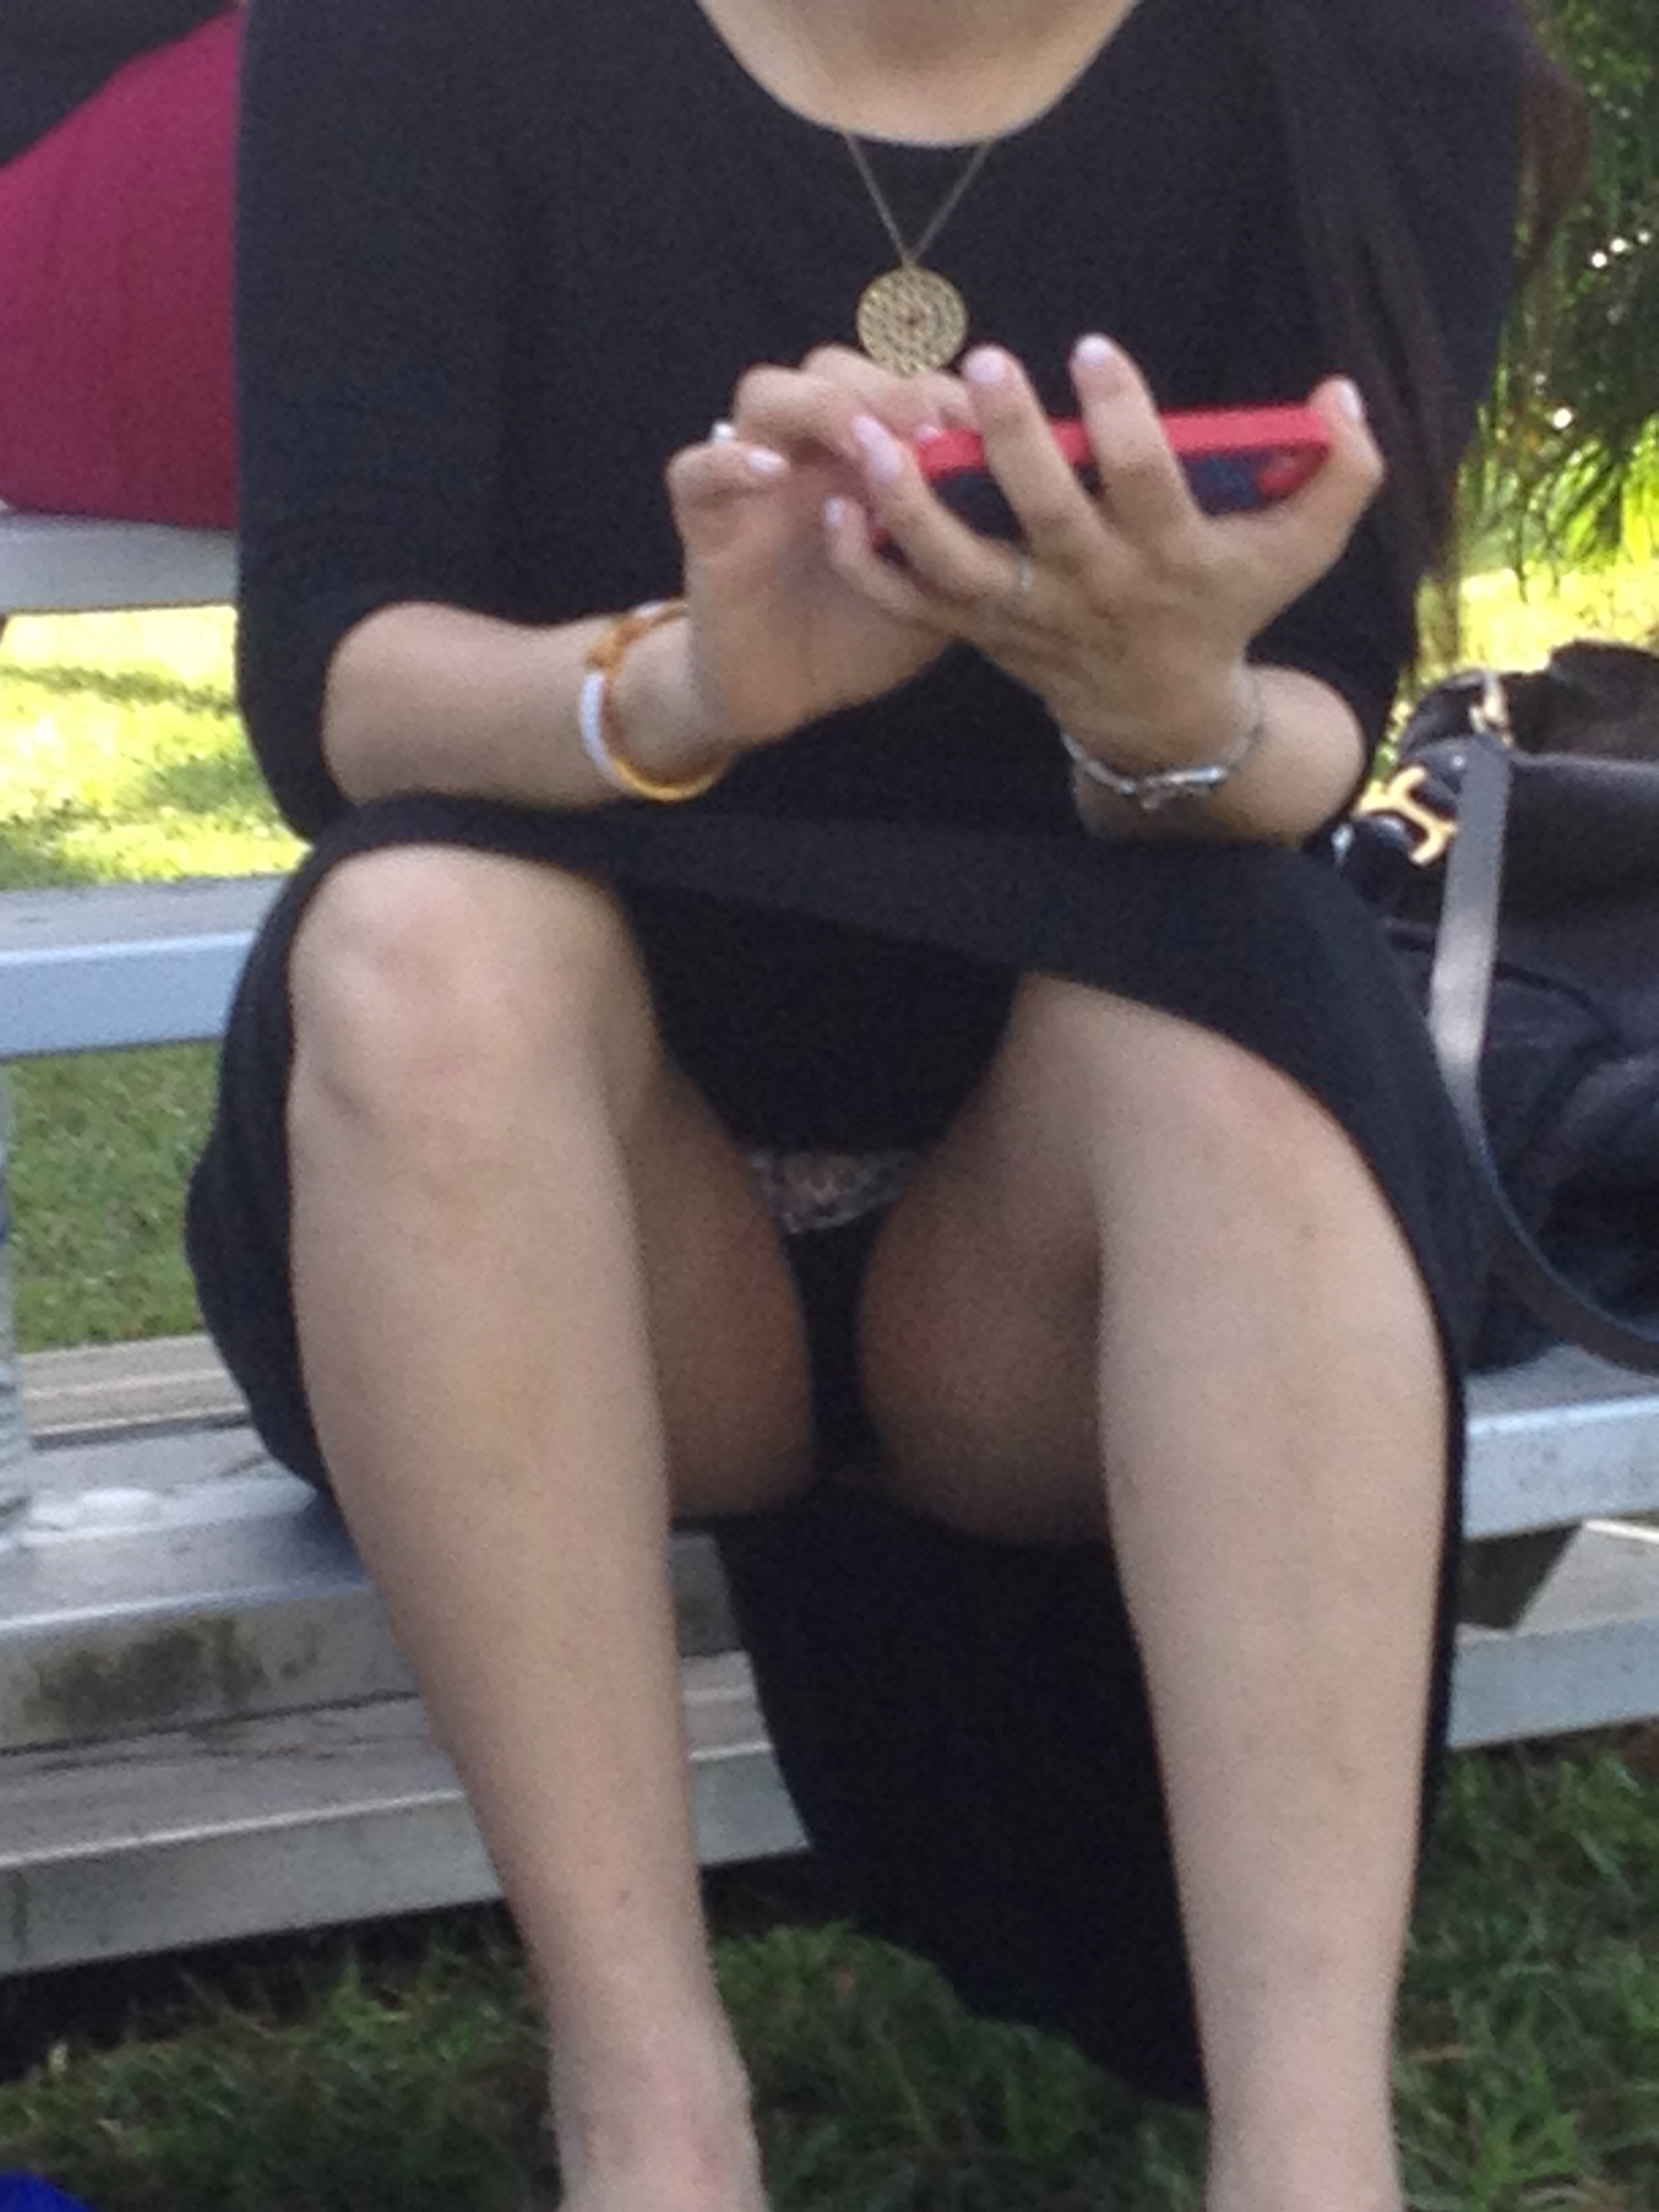 sitting candid Girl upskirt